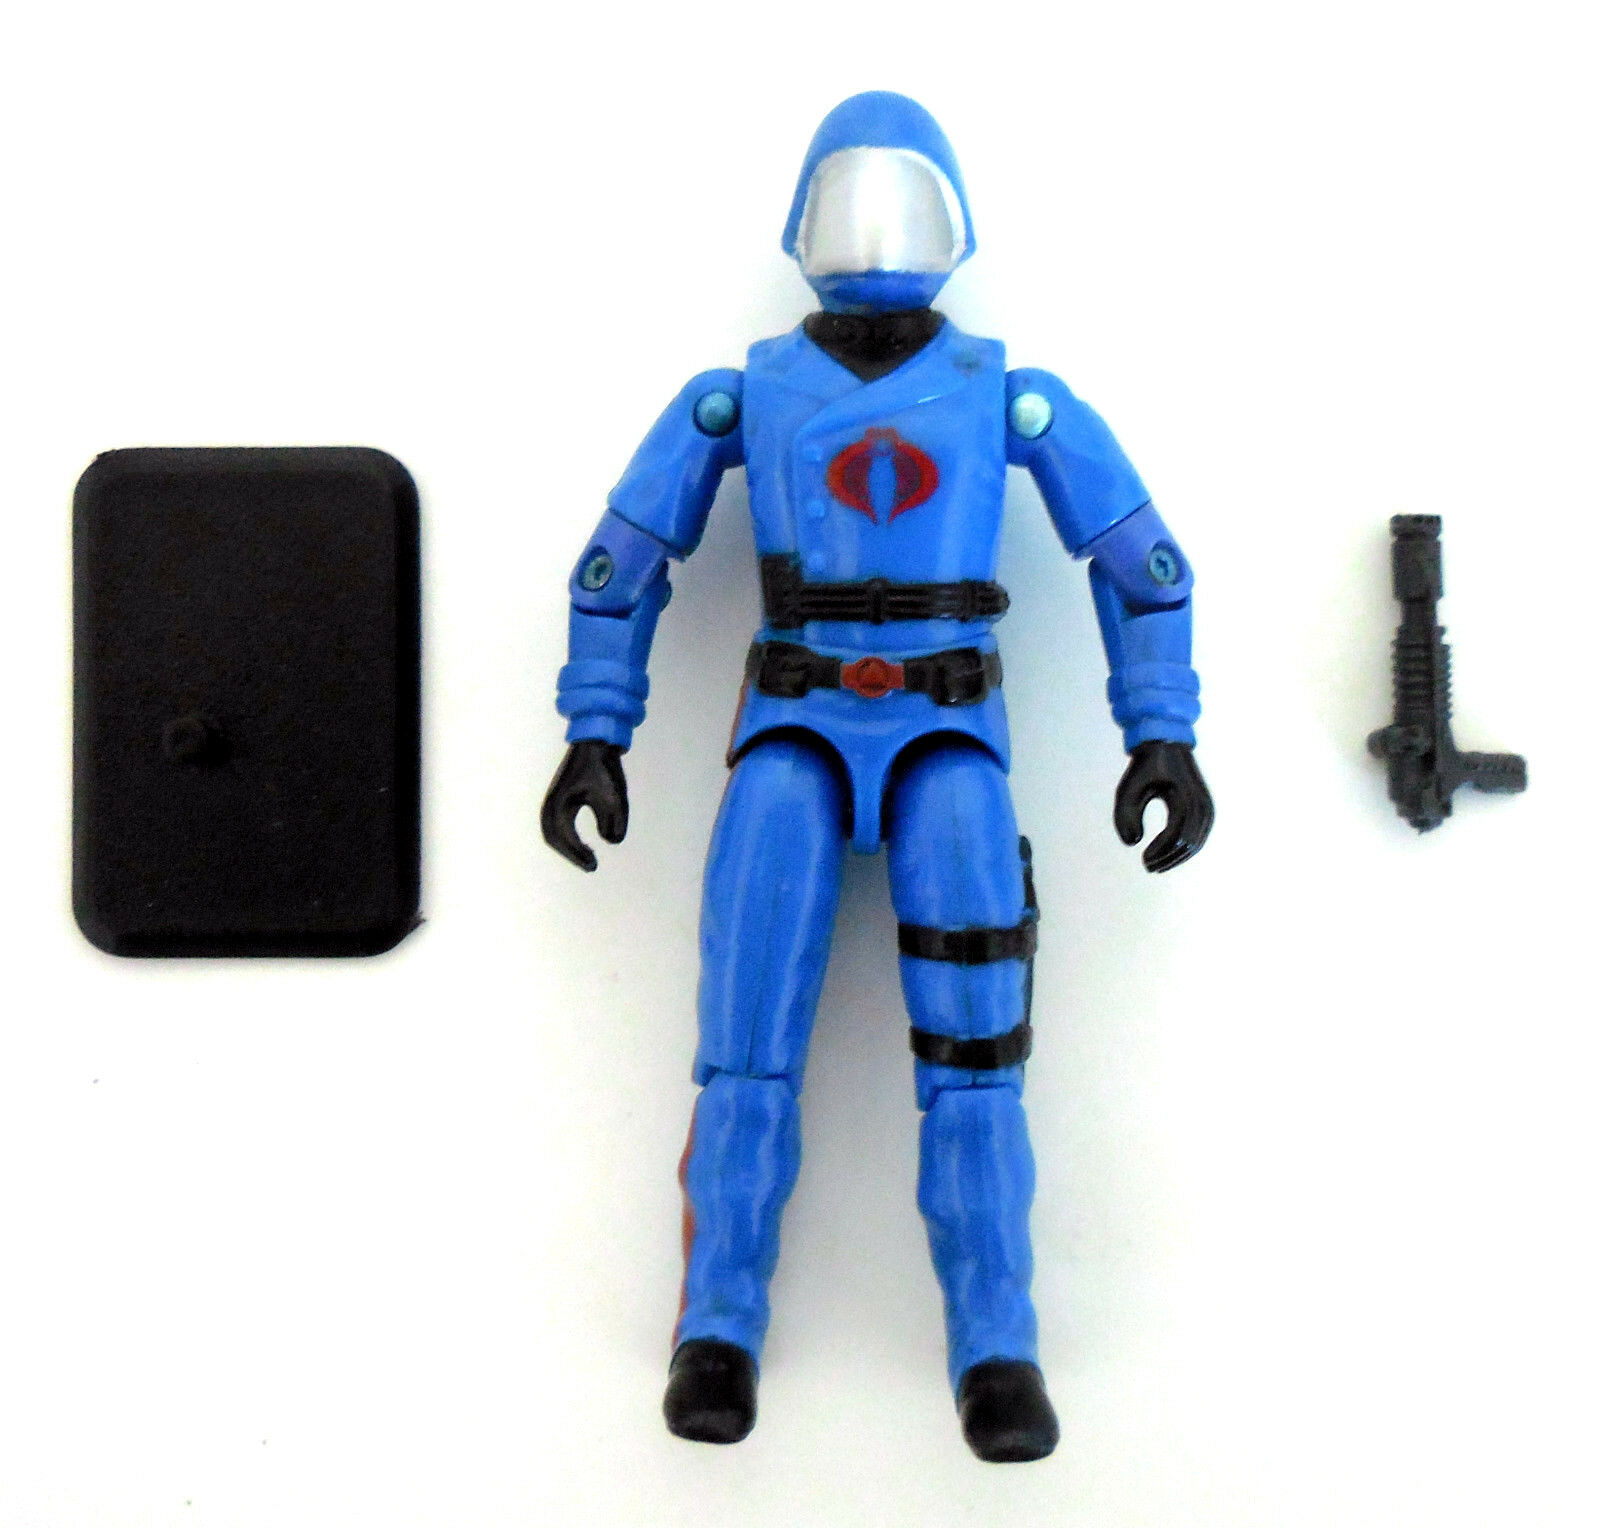 G.I. Joe_Rare 1983 V1.5 Cobra Commander_100% Complete_FLAWLESS